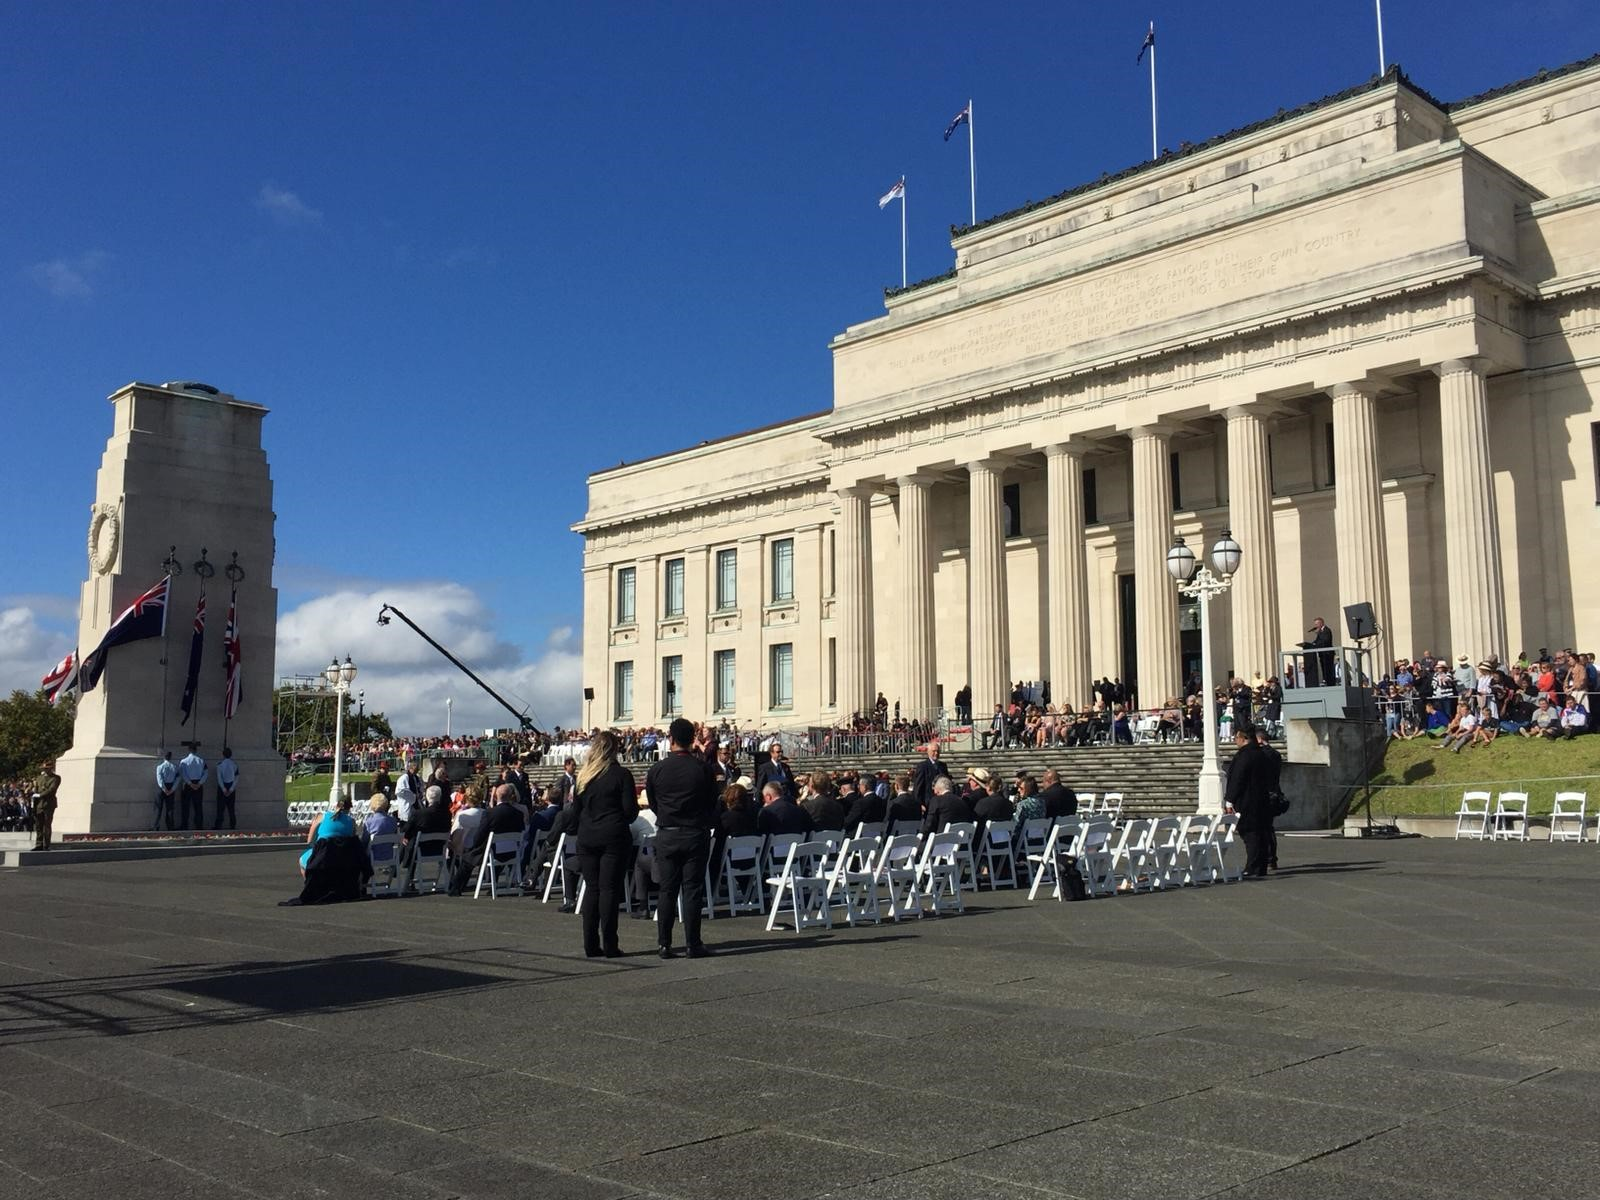 Crowds at the Auckland war memorial (Ellie Cullen/PA)